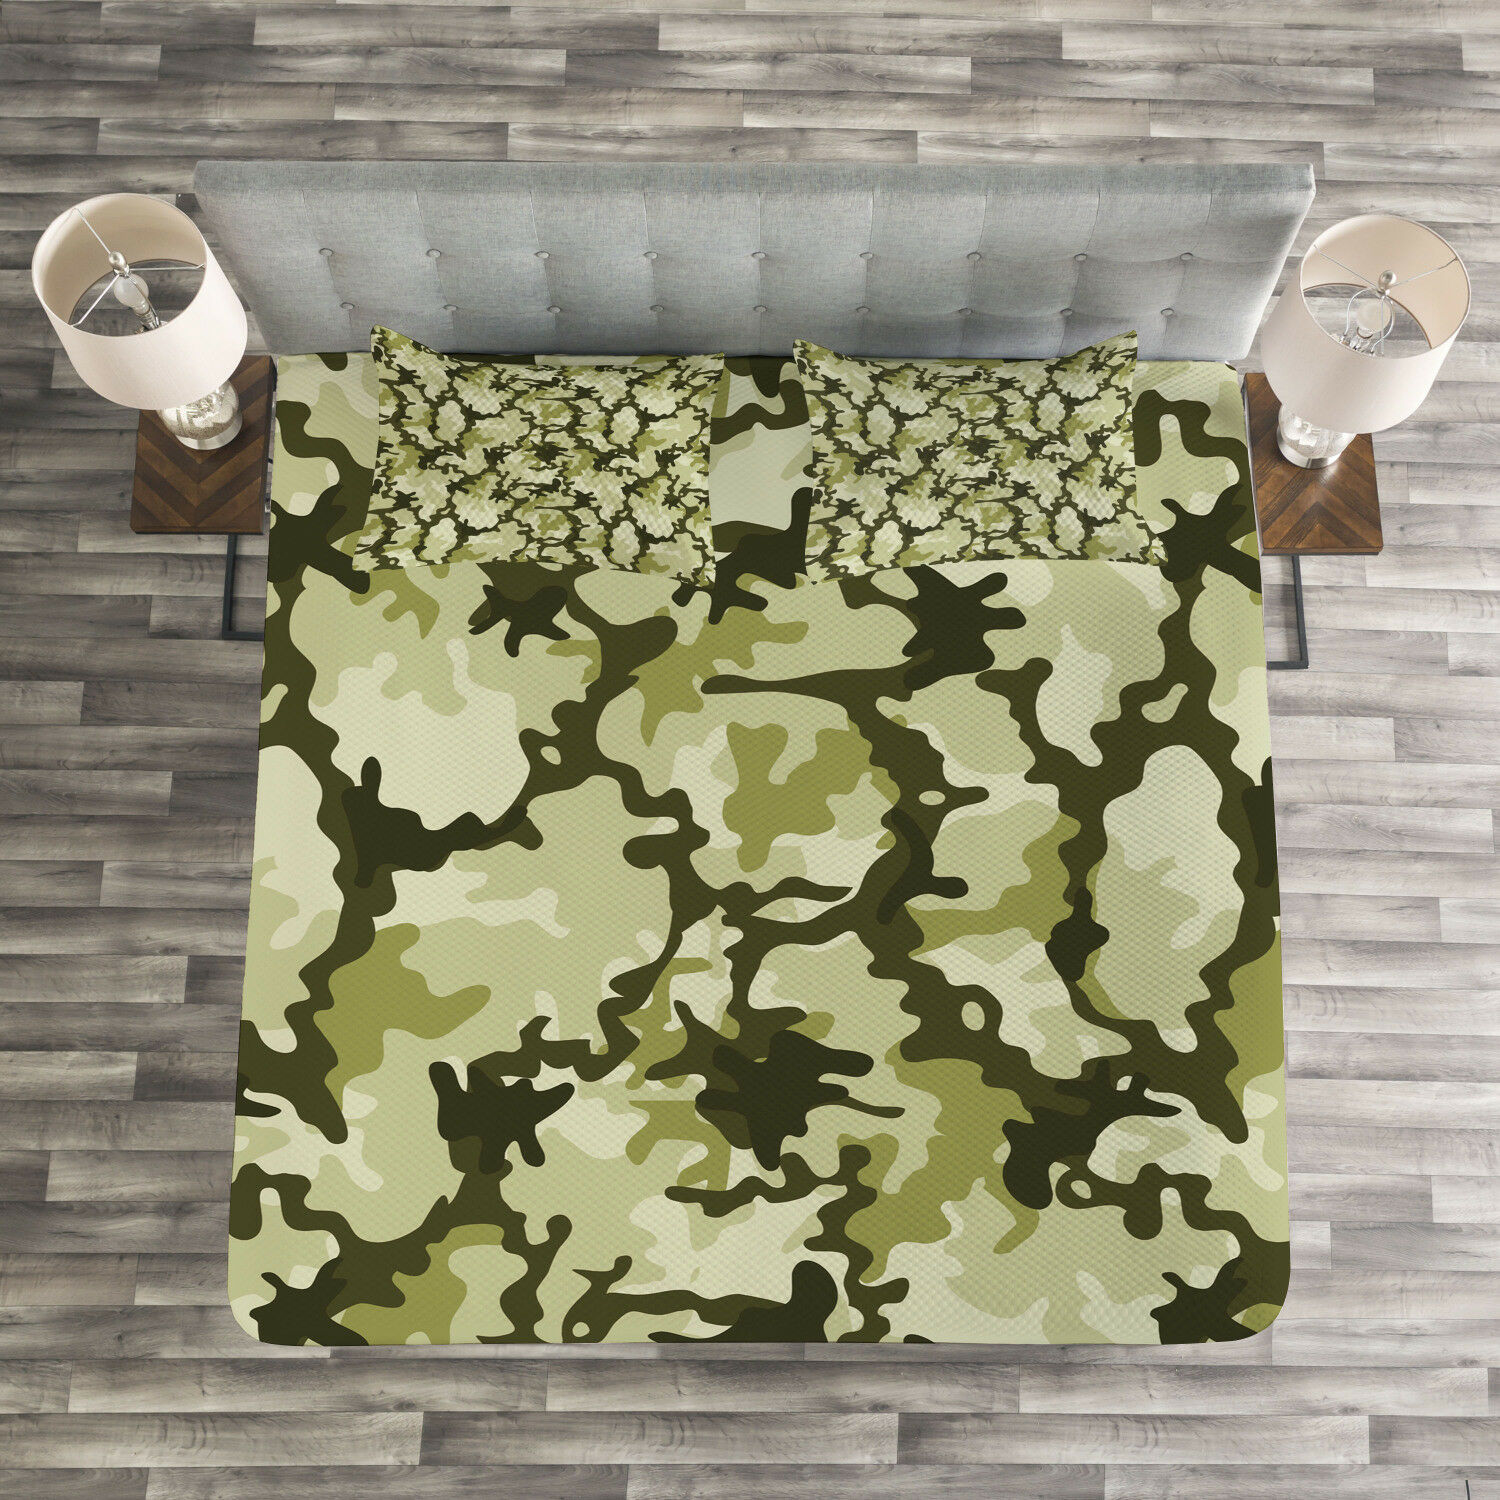 Green Quilted Bedspread & Pillow Shams Set, Jungle Camouflage Design Print